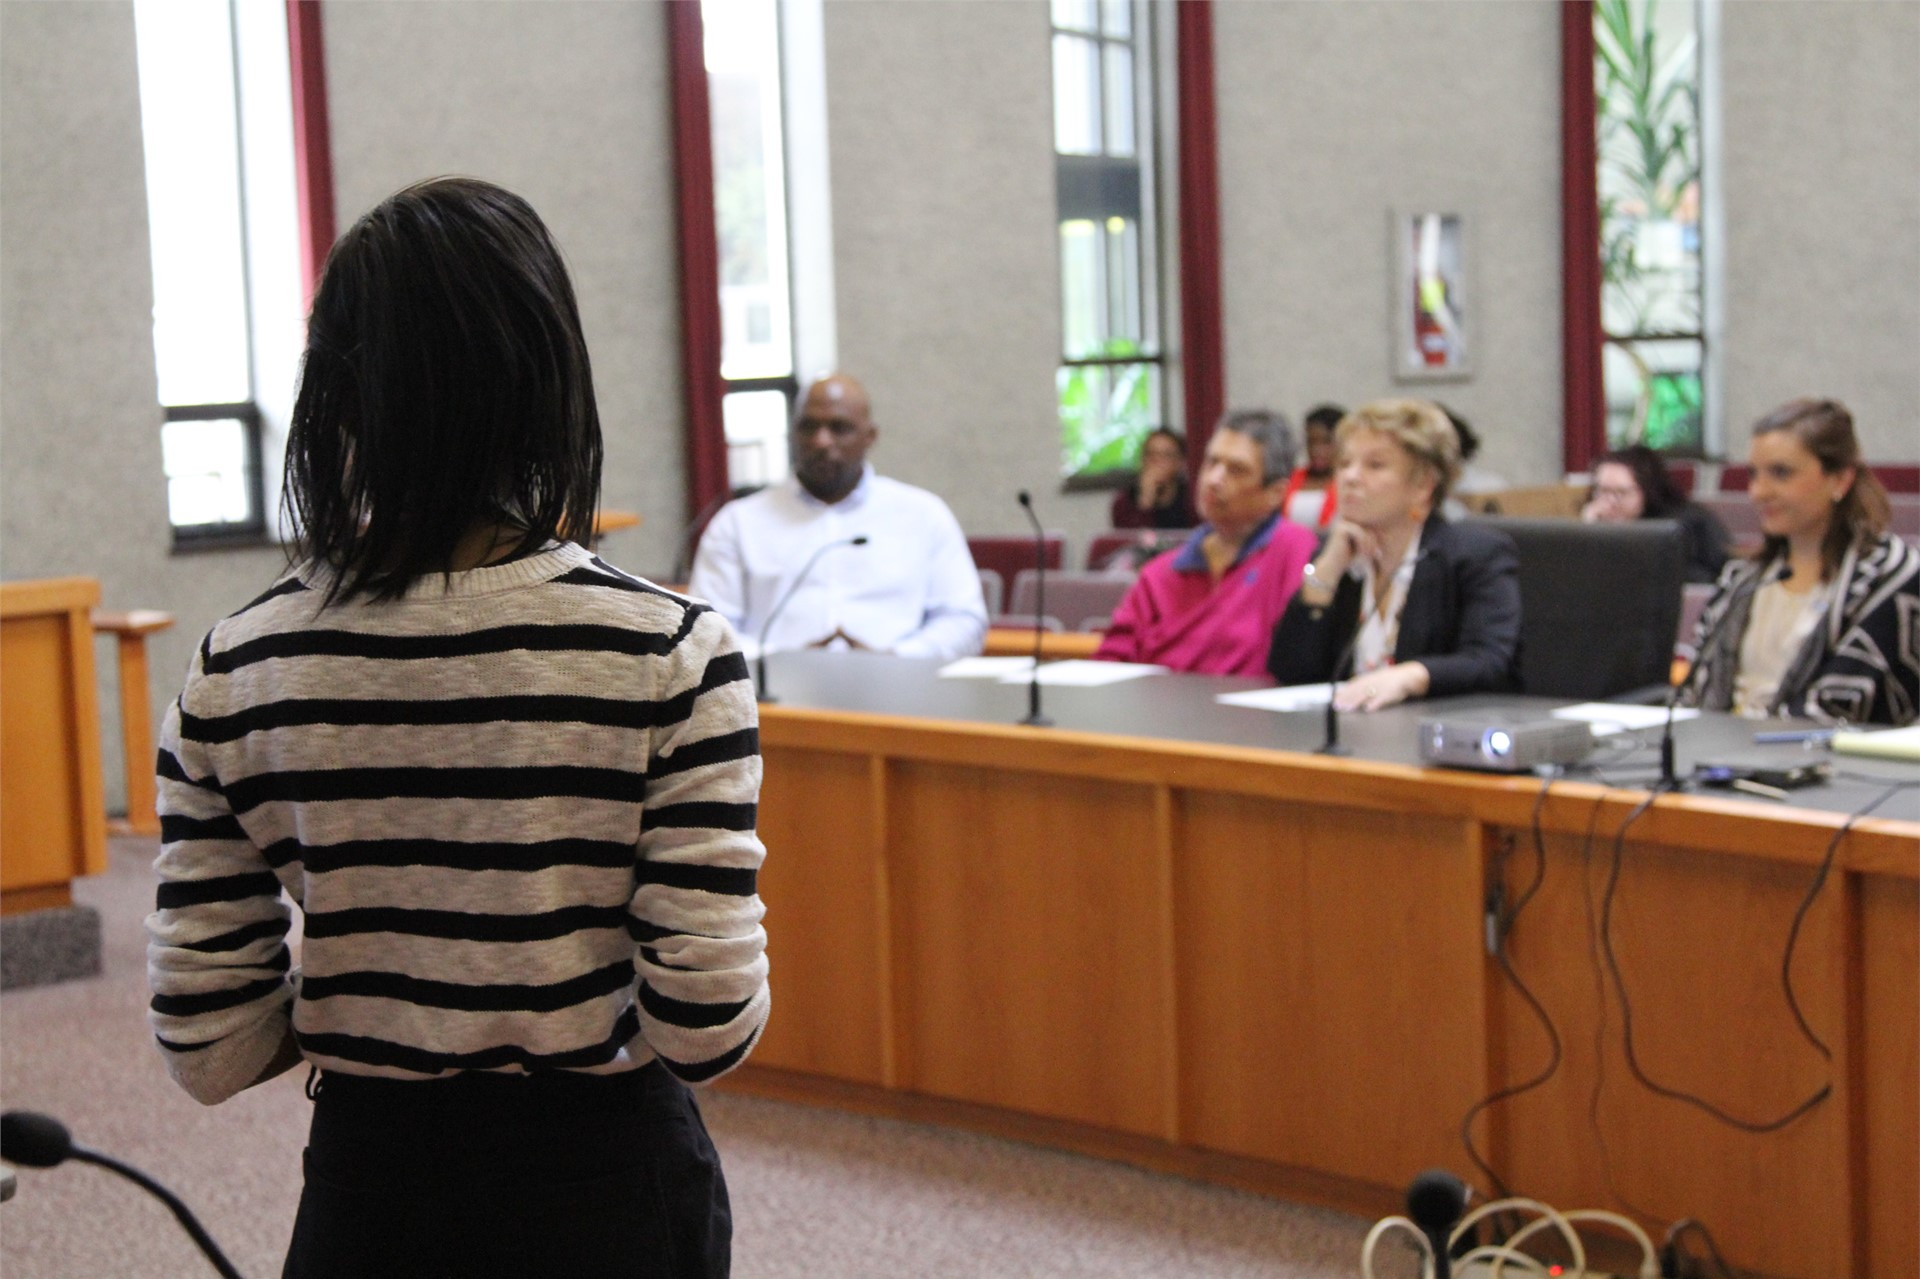 Political Science 205 students presenting to City Leaders